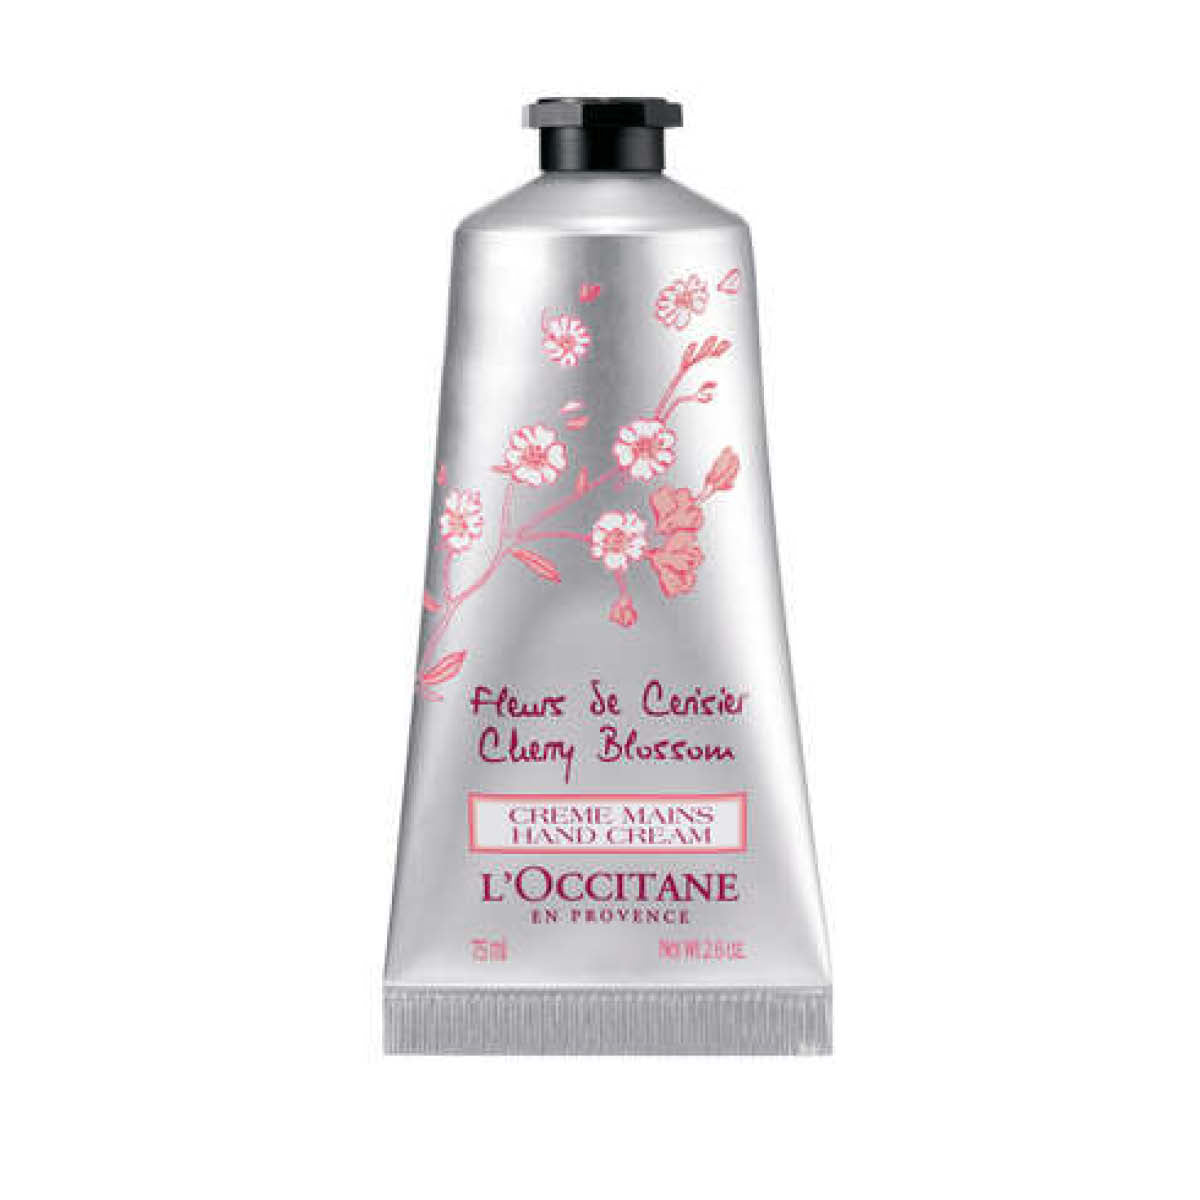 L'Occitane Cherry Blossom Petal-Soft Hand Cream